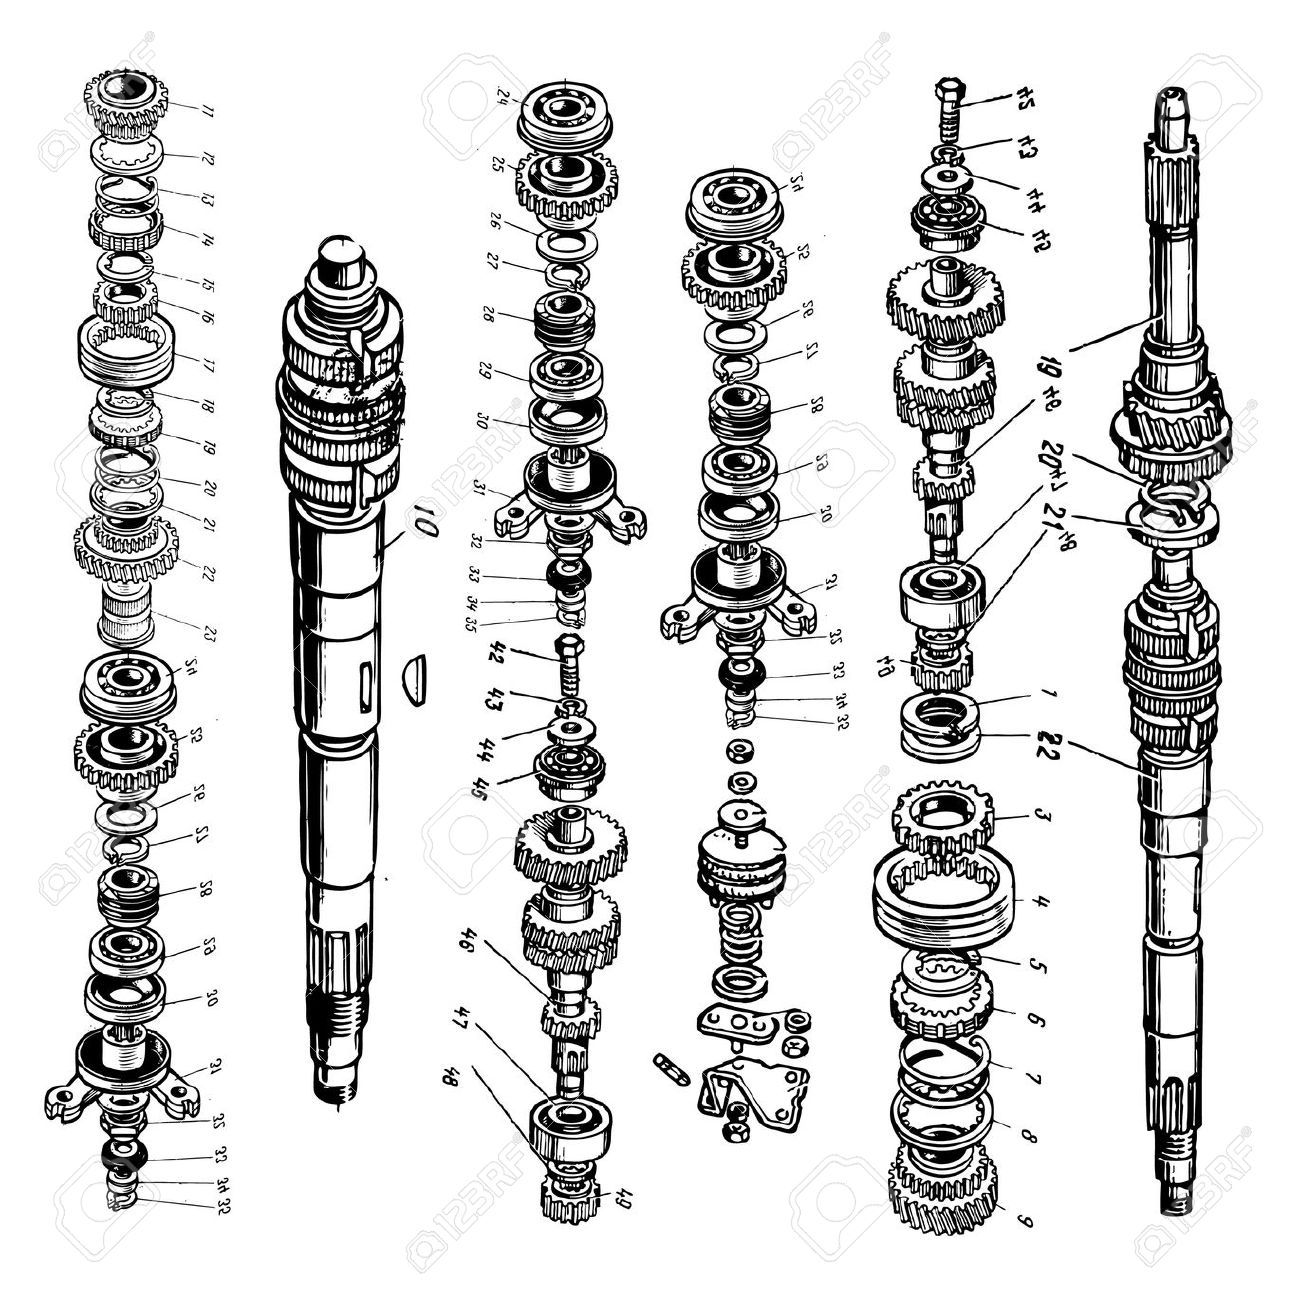 9510898-technical-drawing-or-blueprint-of-gears-on-white